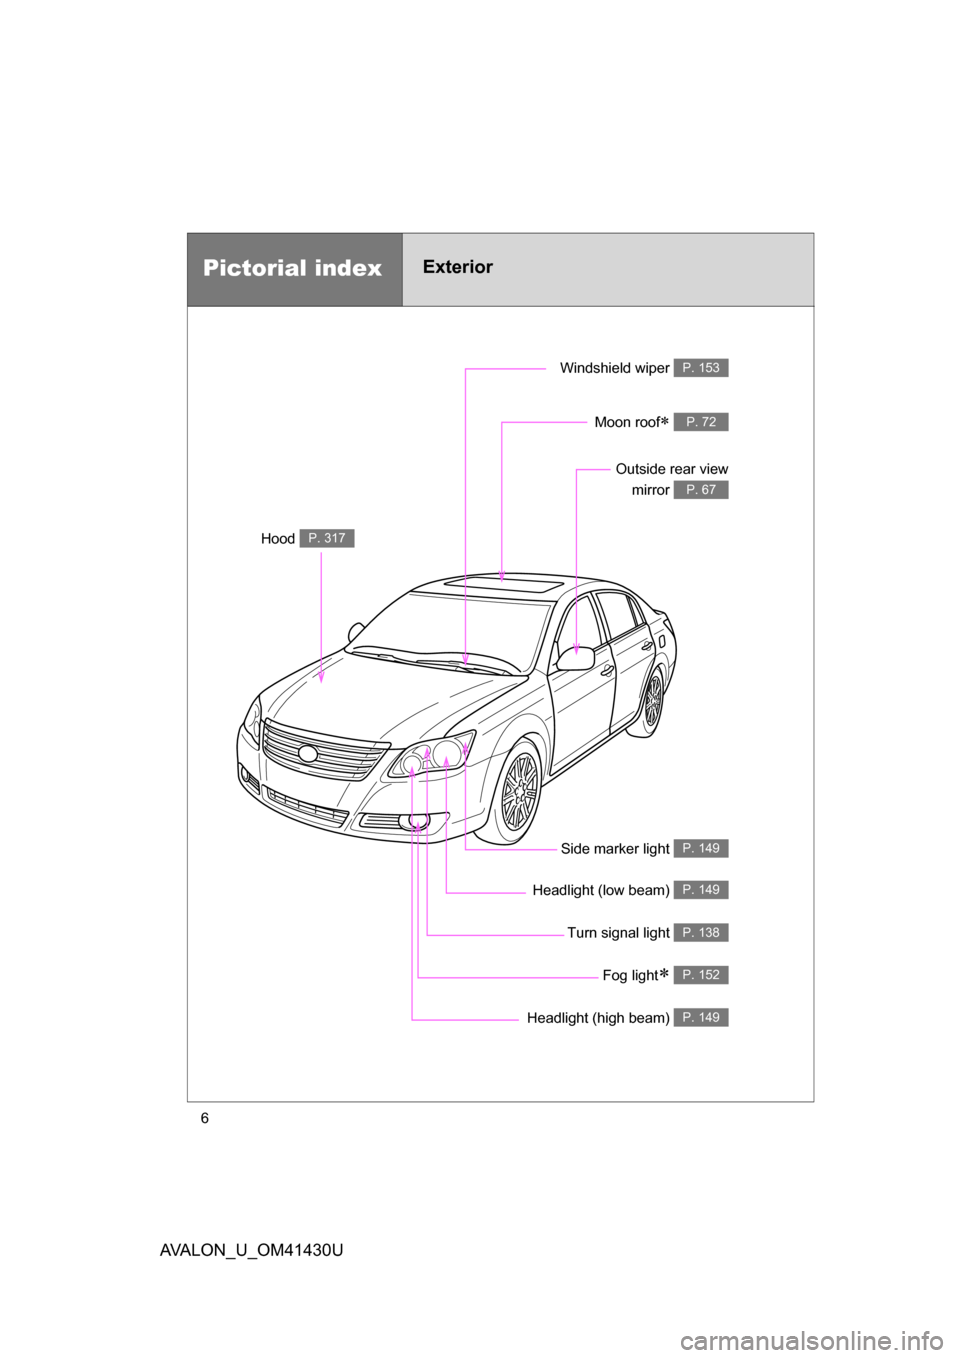 TOYOTA AVALON 2009 XX30 / 3.G Owners Manual, Page 6